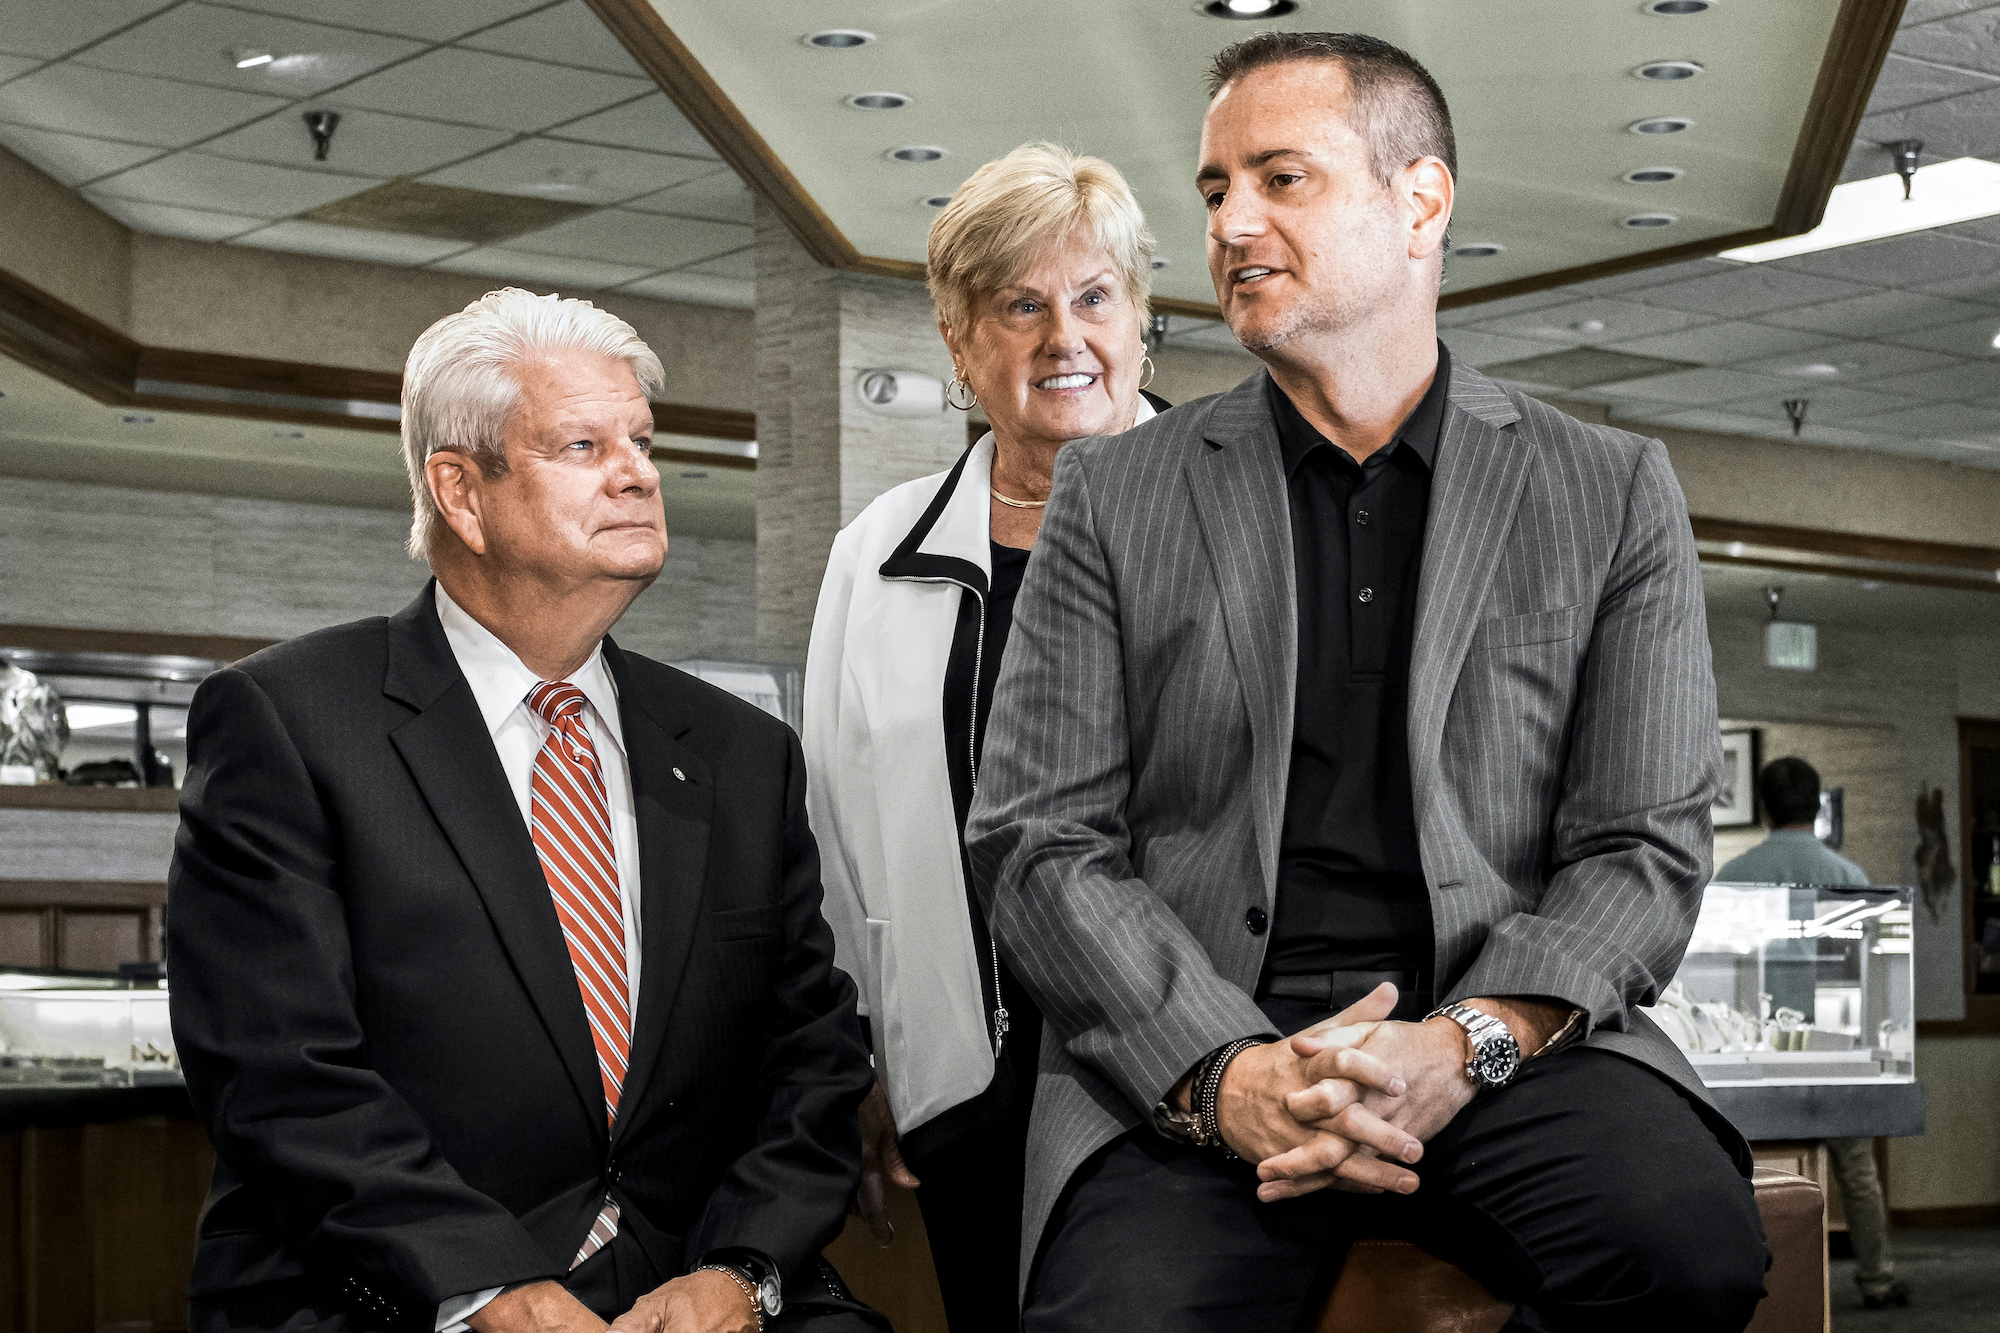 CEO John Carter sitting with former CEO John Wohlwend and his wife inside the Jack Lewis Jewelers store location